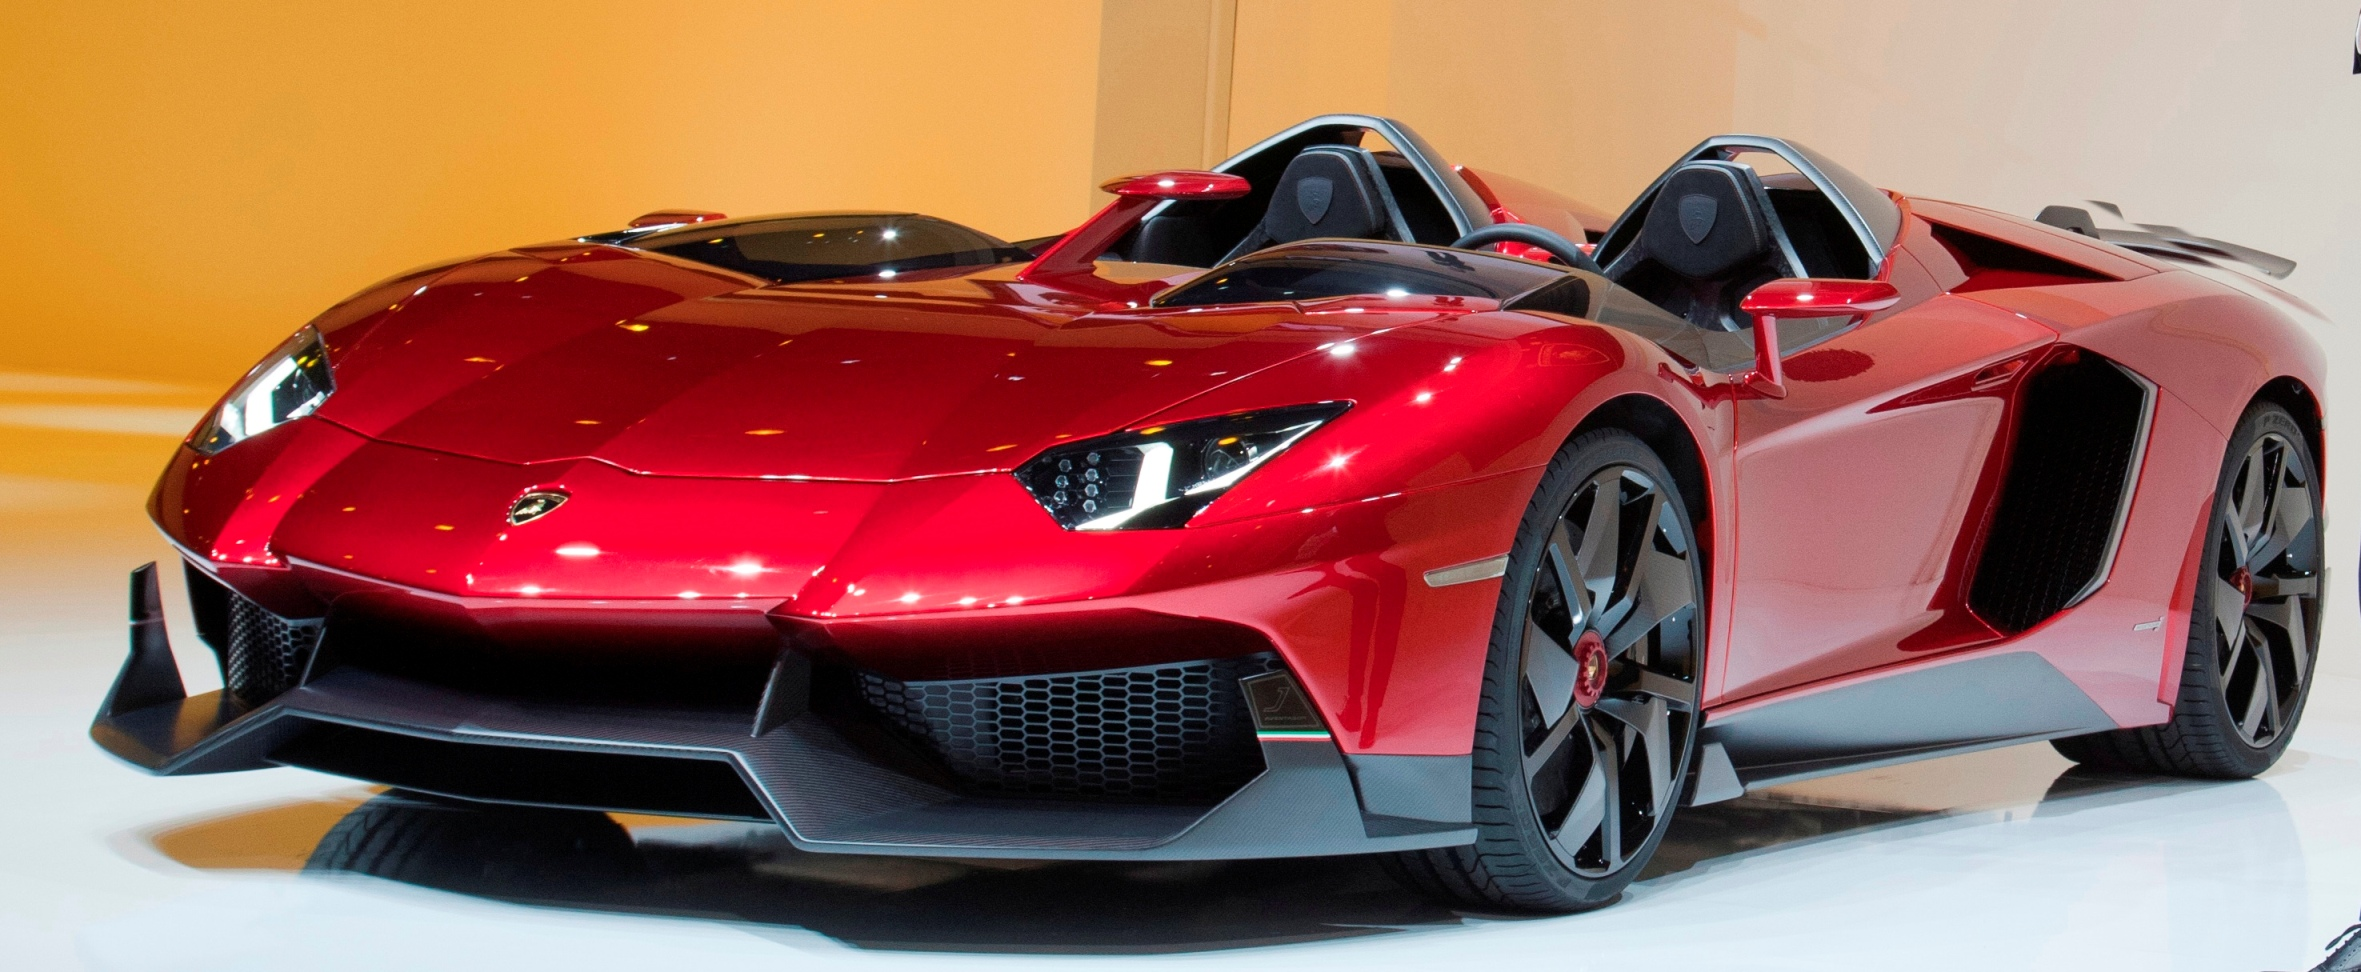 hypercar showcase 2014 lamborghini aventador trumped only by aventador j and aventador roadster. Black Bedroom Furniture Sets. Home Design Ideas